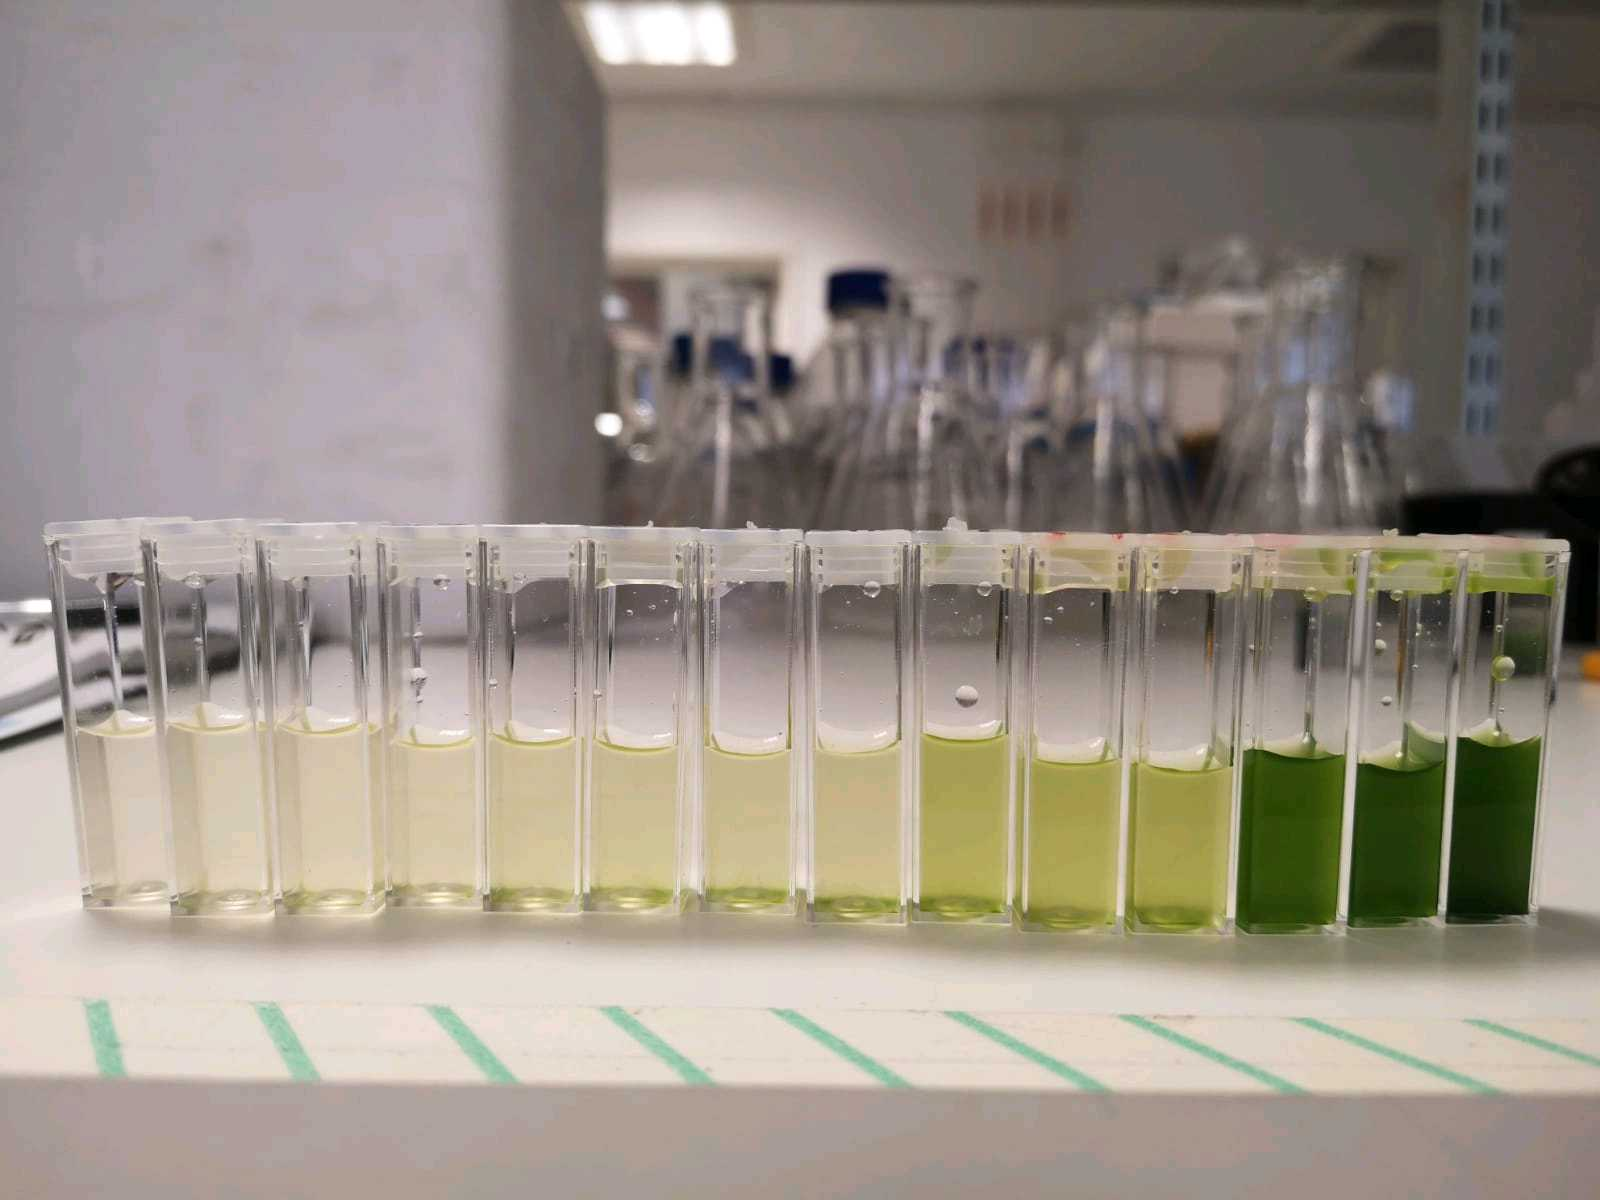 concentrated algae arranged in a neat row of vials containing gradually increased concentrations